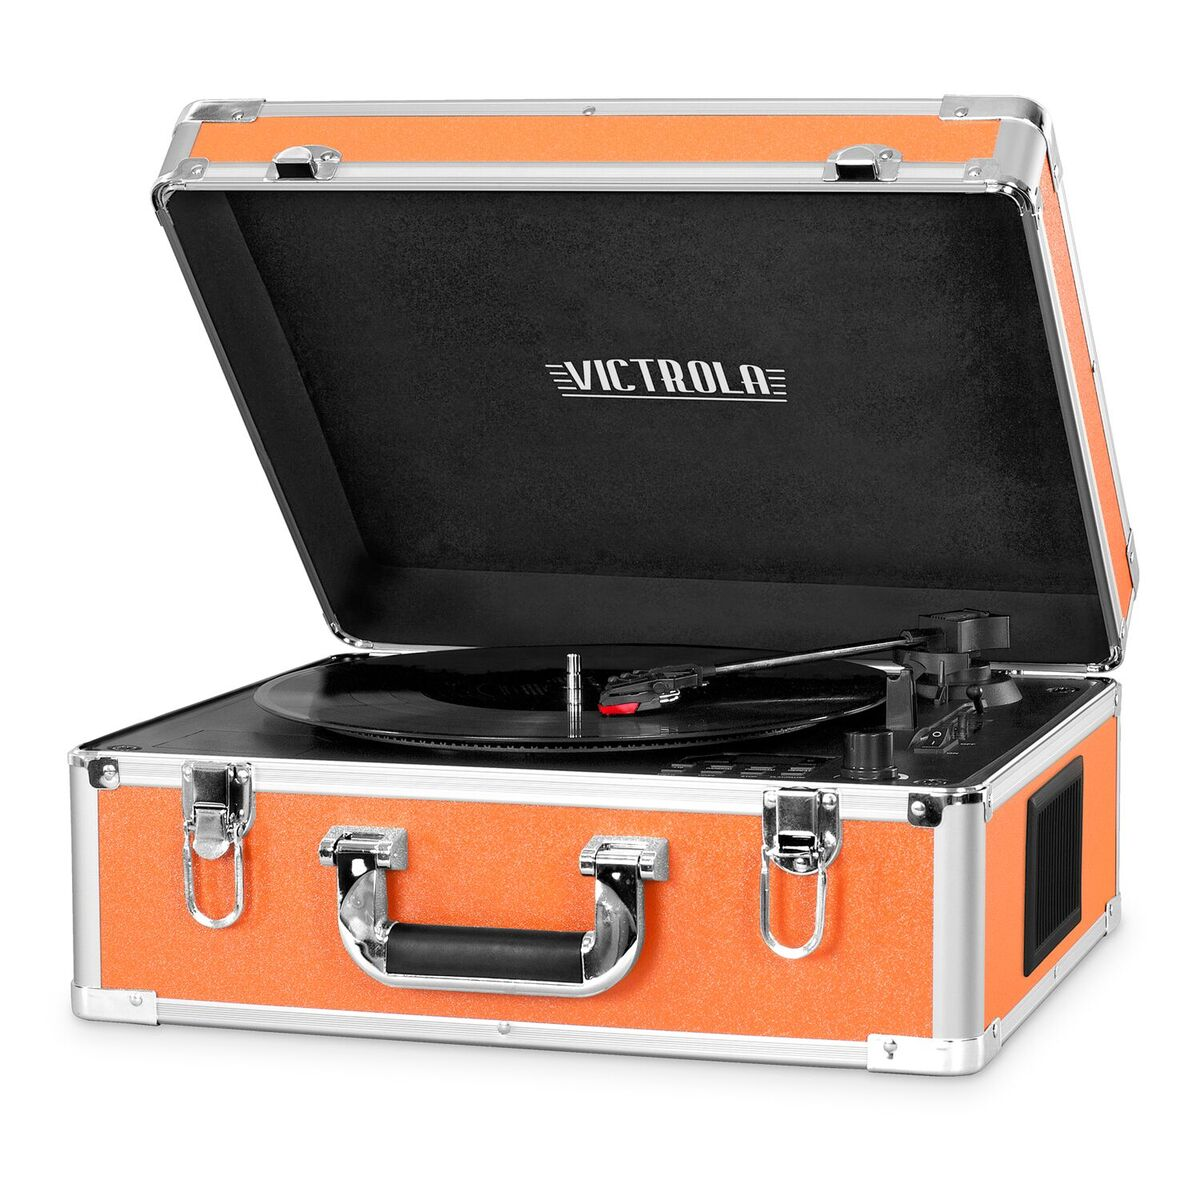 Victrola Full-size Suitcase Record Player with CD Player and Bluetooth, Orange